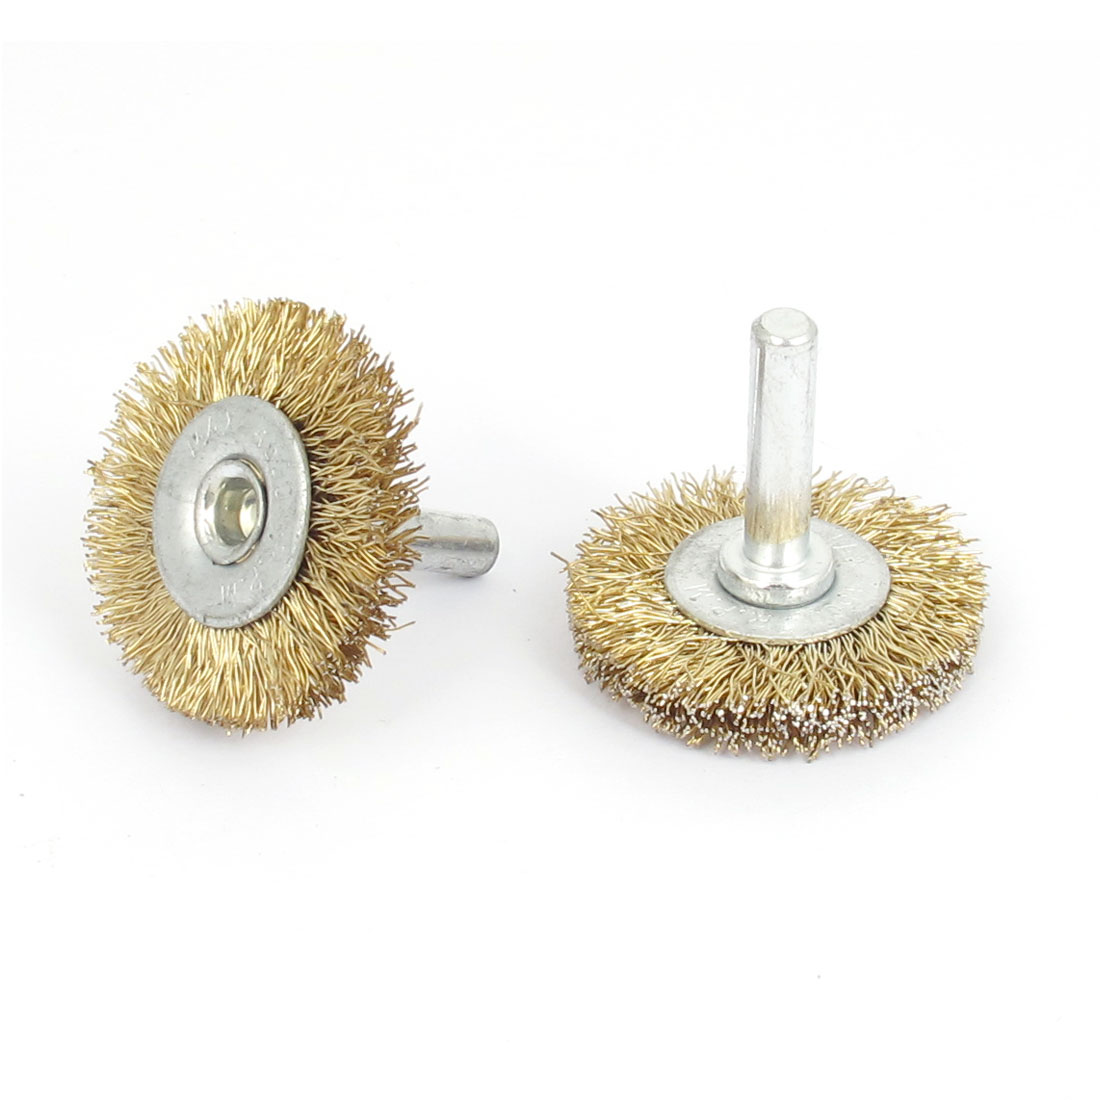 2pcs 38 x 6mm Steel Wire Polishing Buffing Wheels Grinding Brushes Rotary Tool